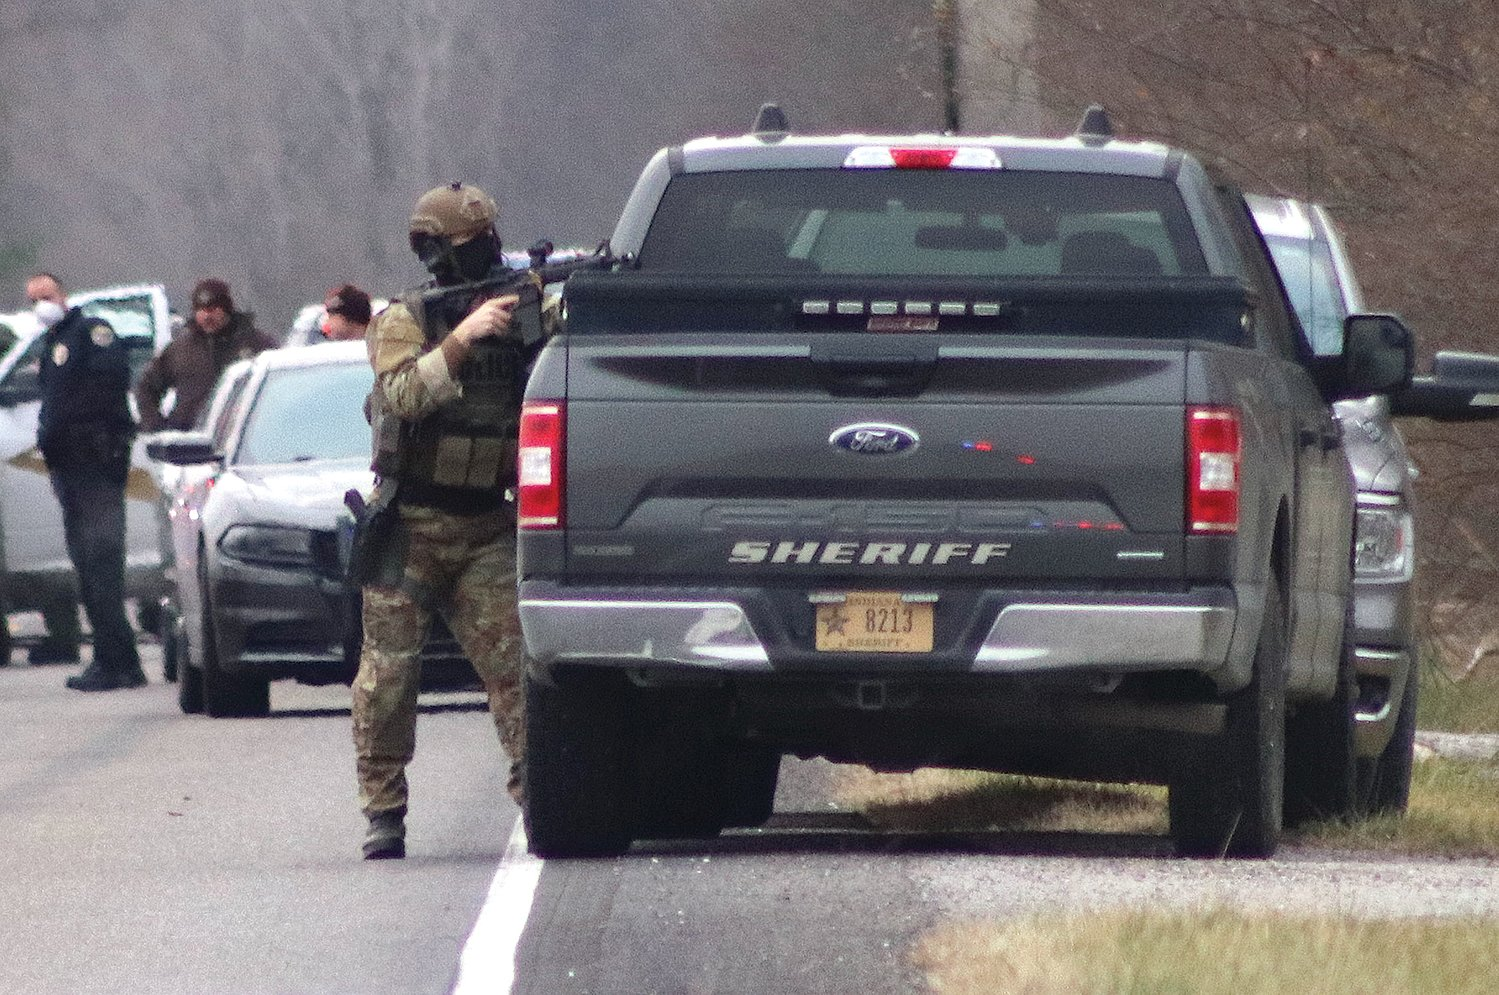 A Crawfordsville man engaged in a seven-hour standoff with police at his home in the 2100 block of North State Road 47 on Dec. 7. The event ended in a police-action shooting that wounded Dillon Gard, 30.